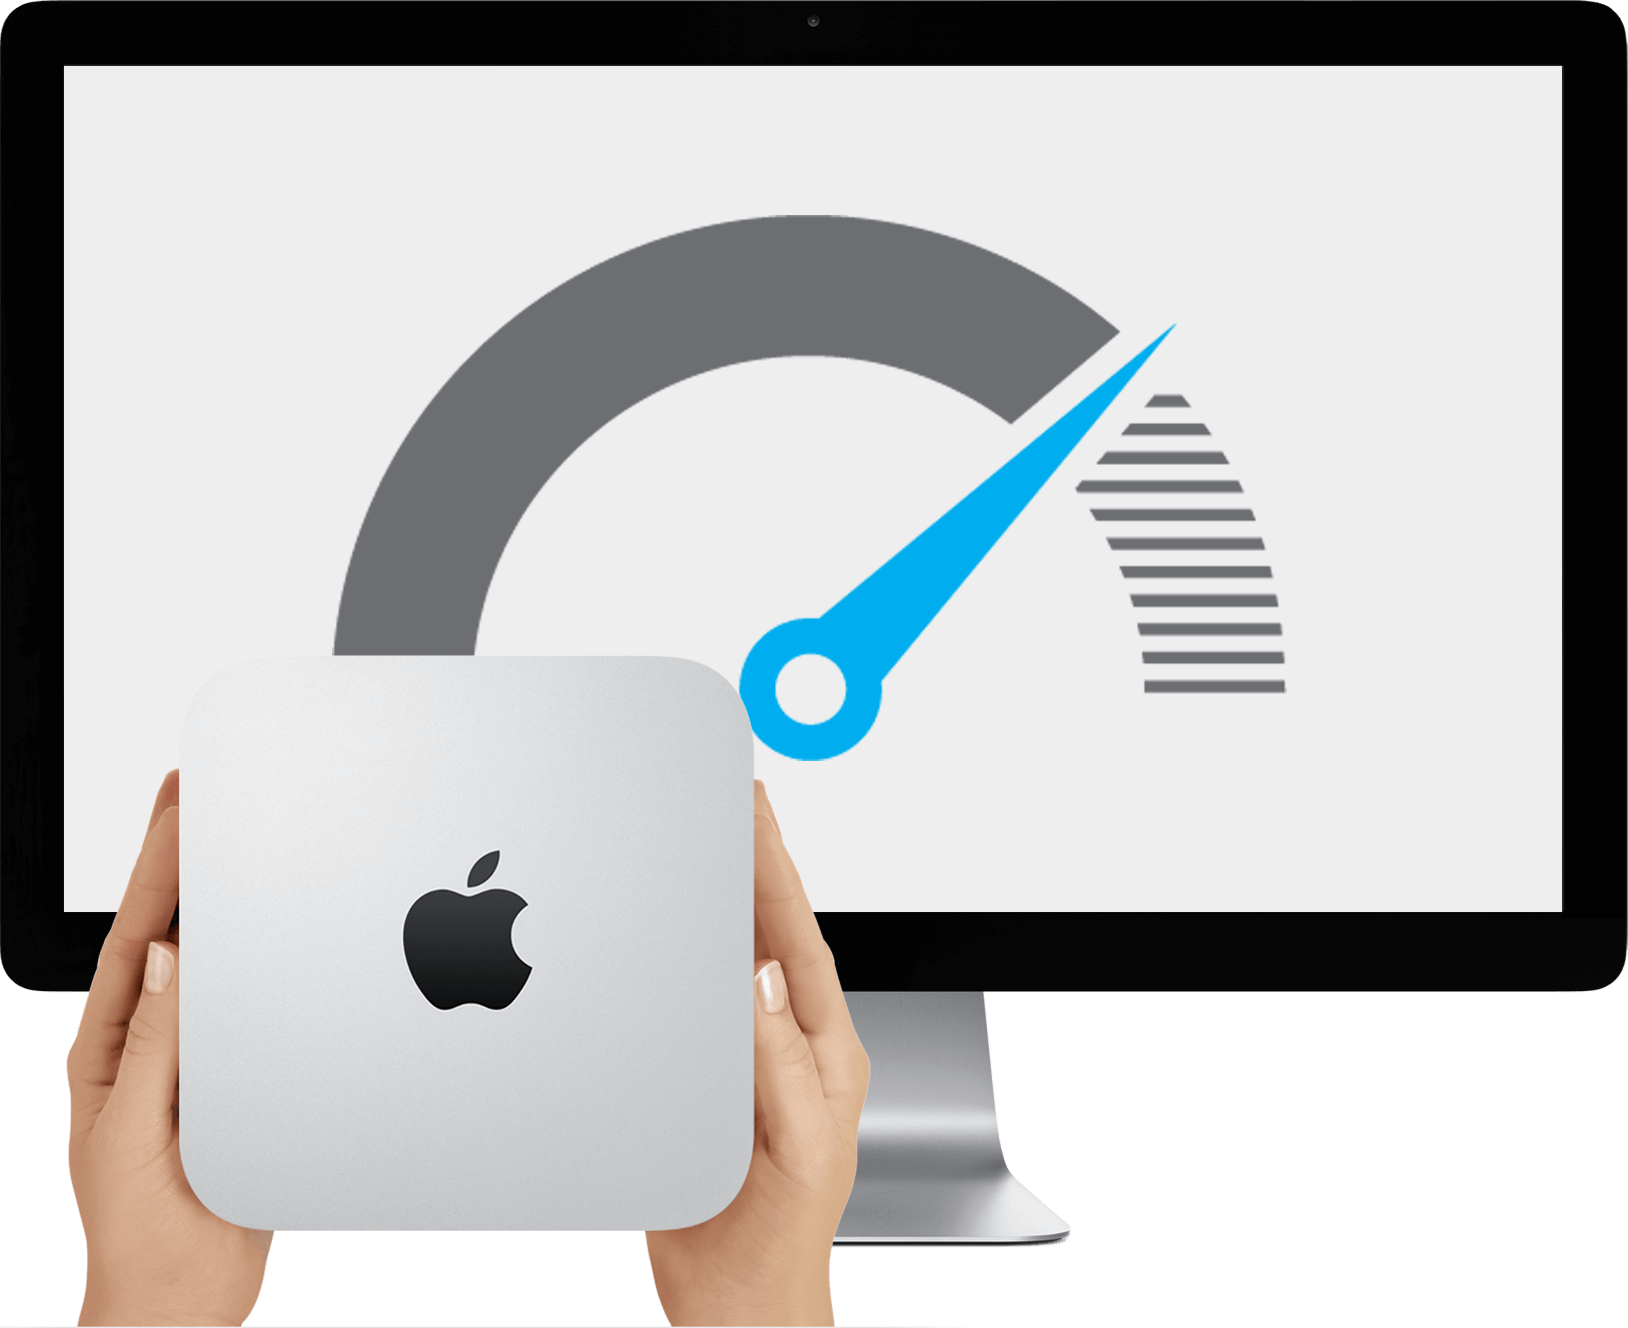 A Mac Mini and Apple Display. The display shows a speedometer, as this Mac Mini has been upgraded and is faster than others